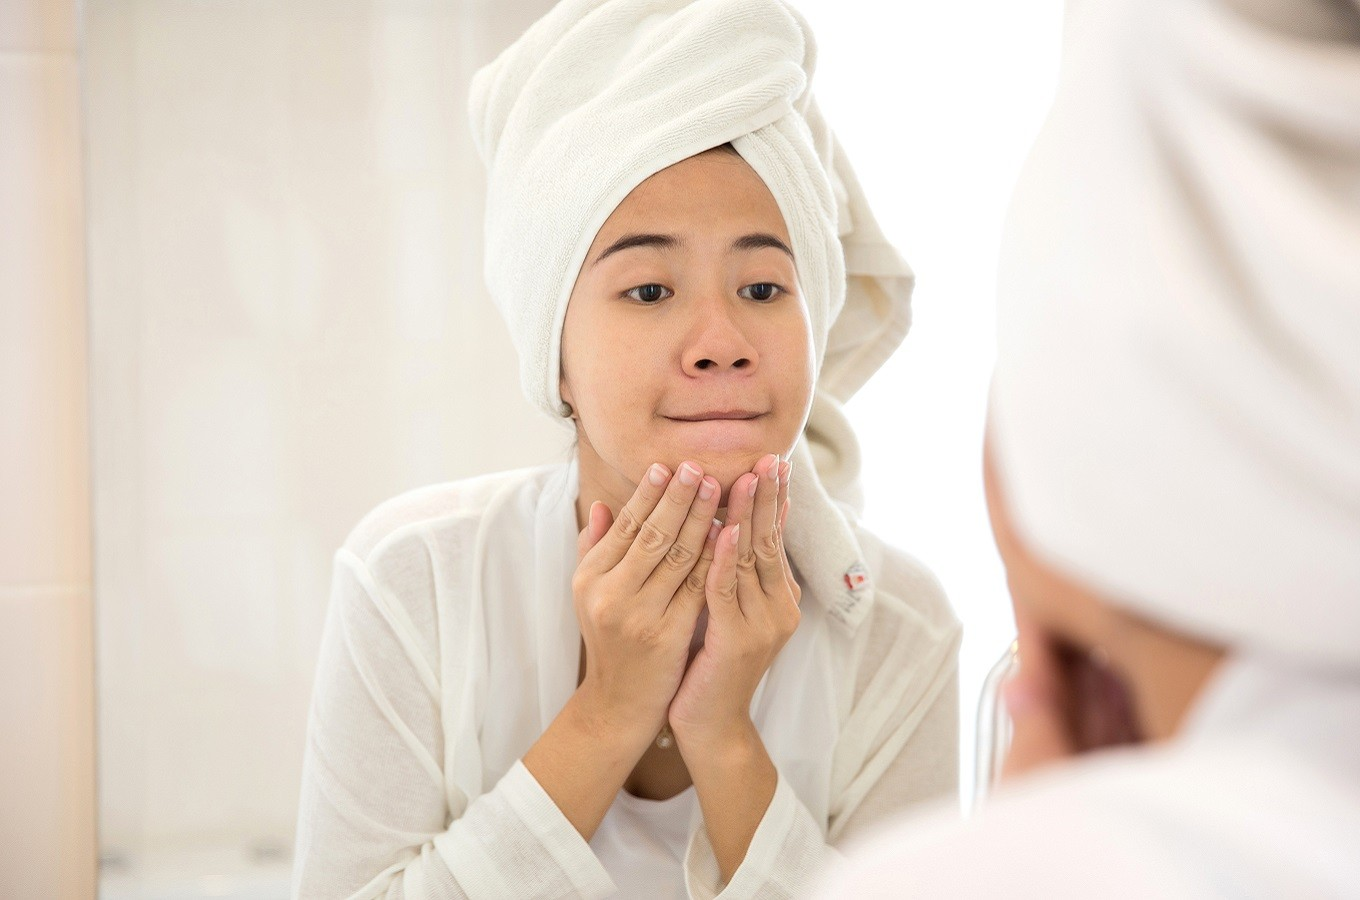 Cure your acne with these five tips